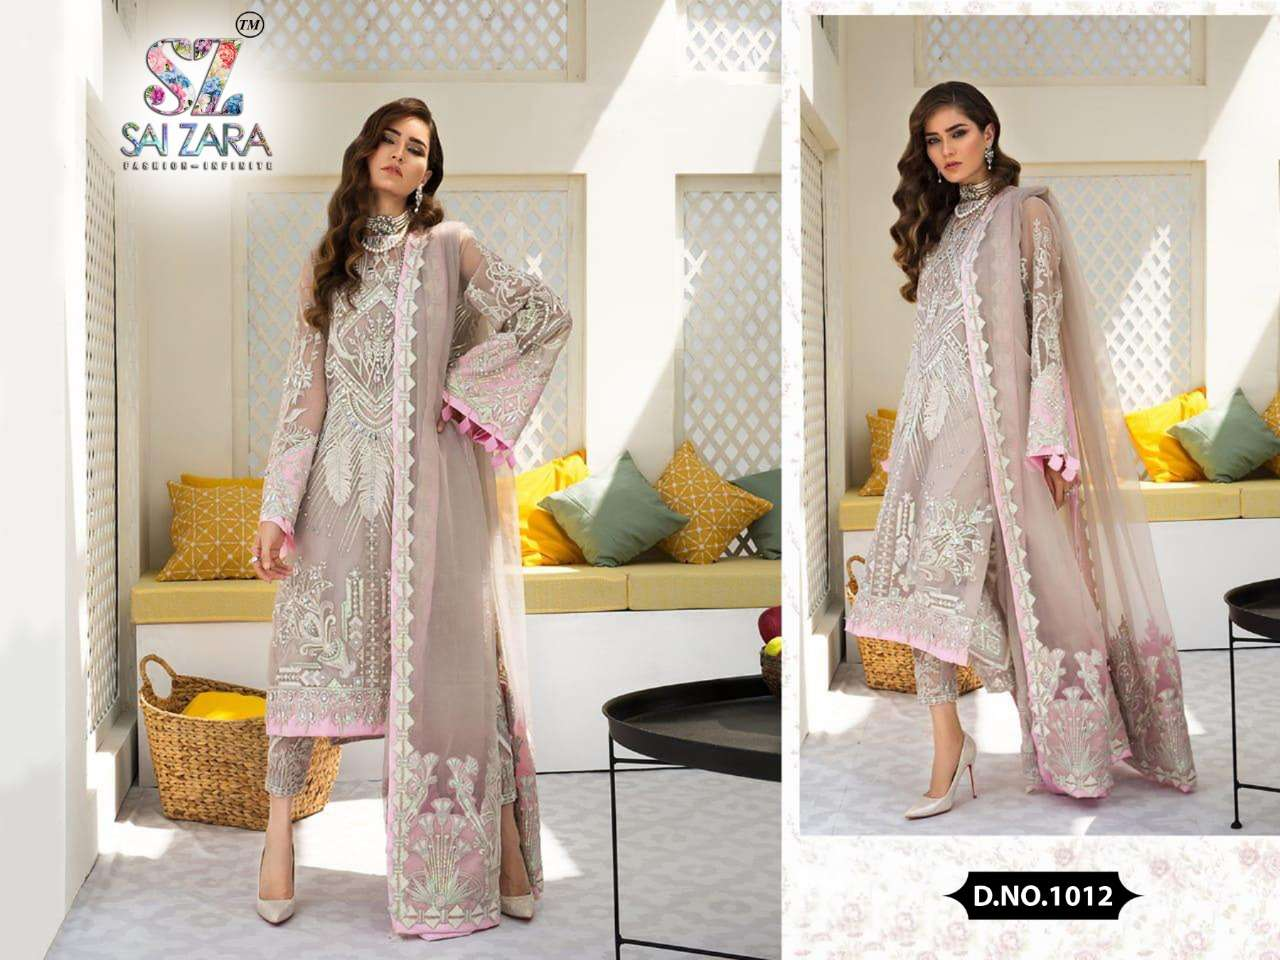 DESIGN NO.1012 SALWAR SUIT BY SAI ZARA